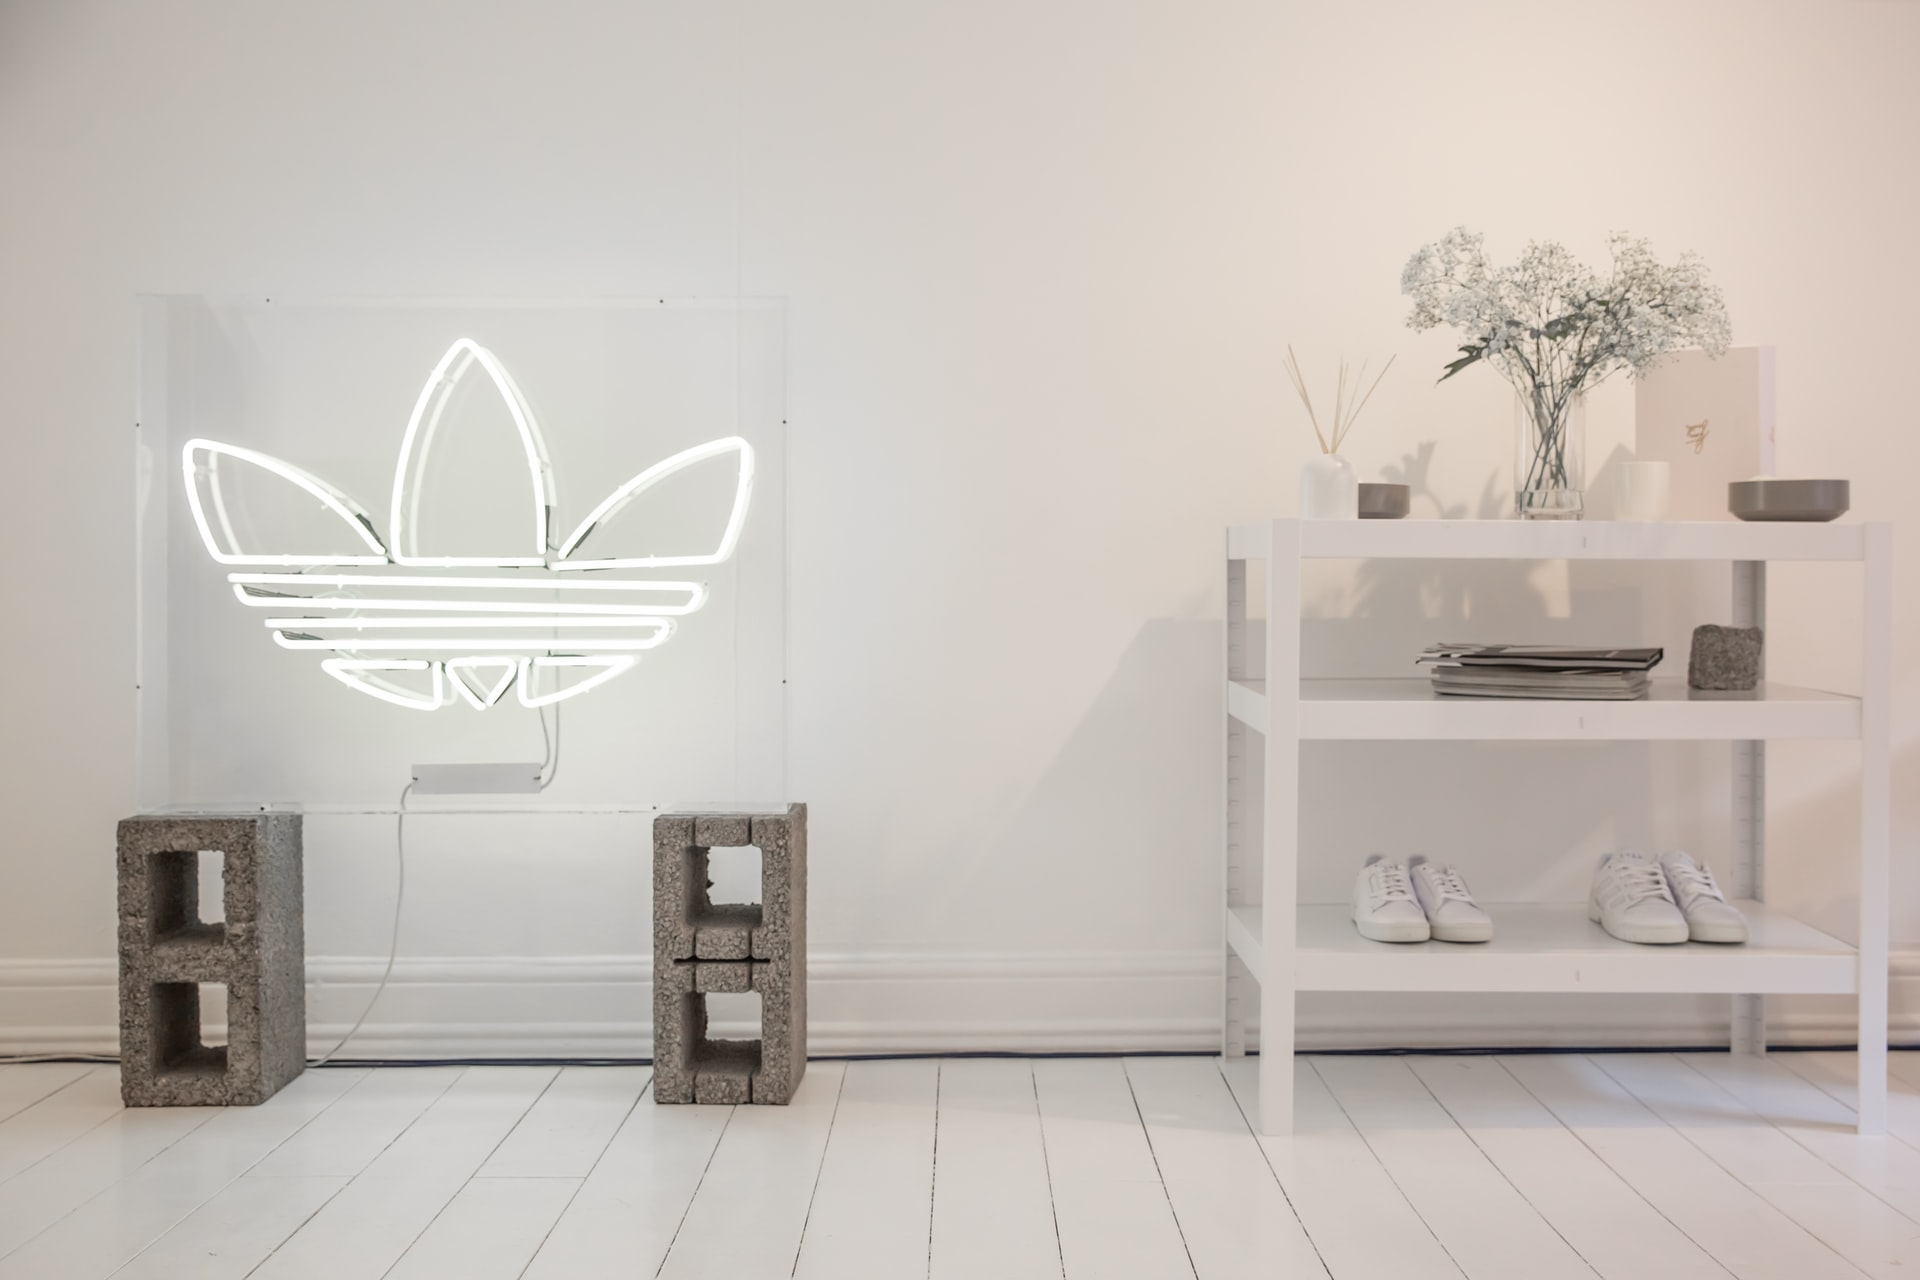 Adidas To Sell Reebok And Focus On Core Brand Brandspurng